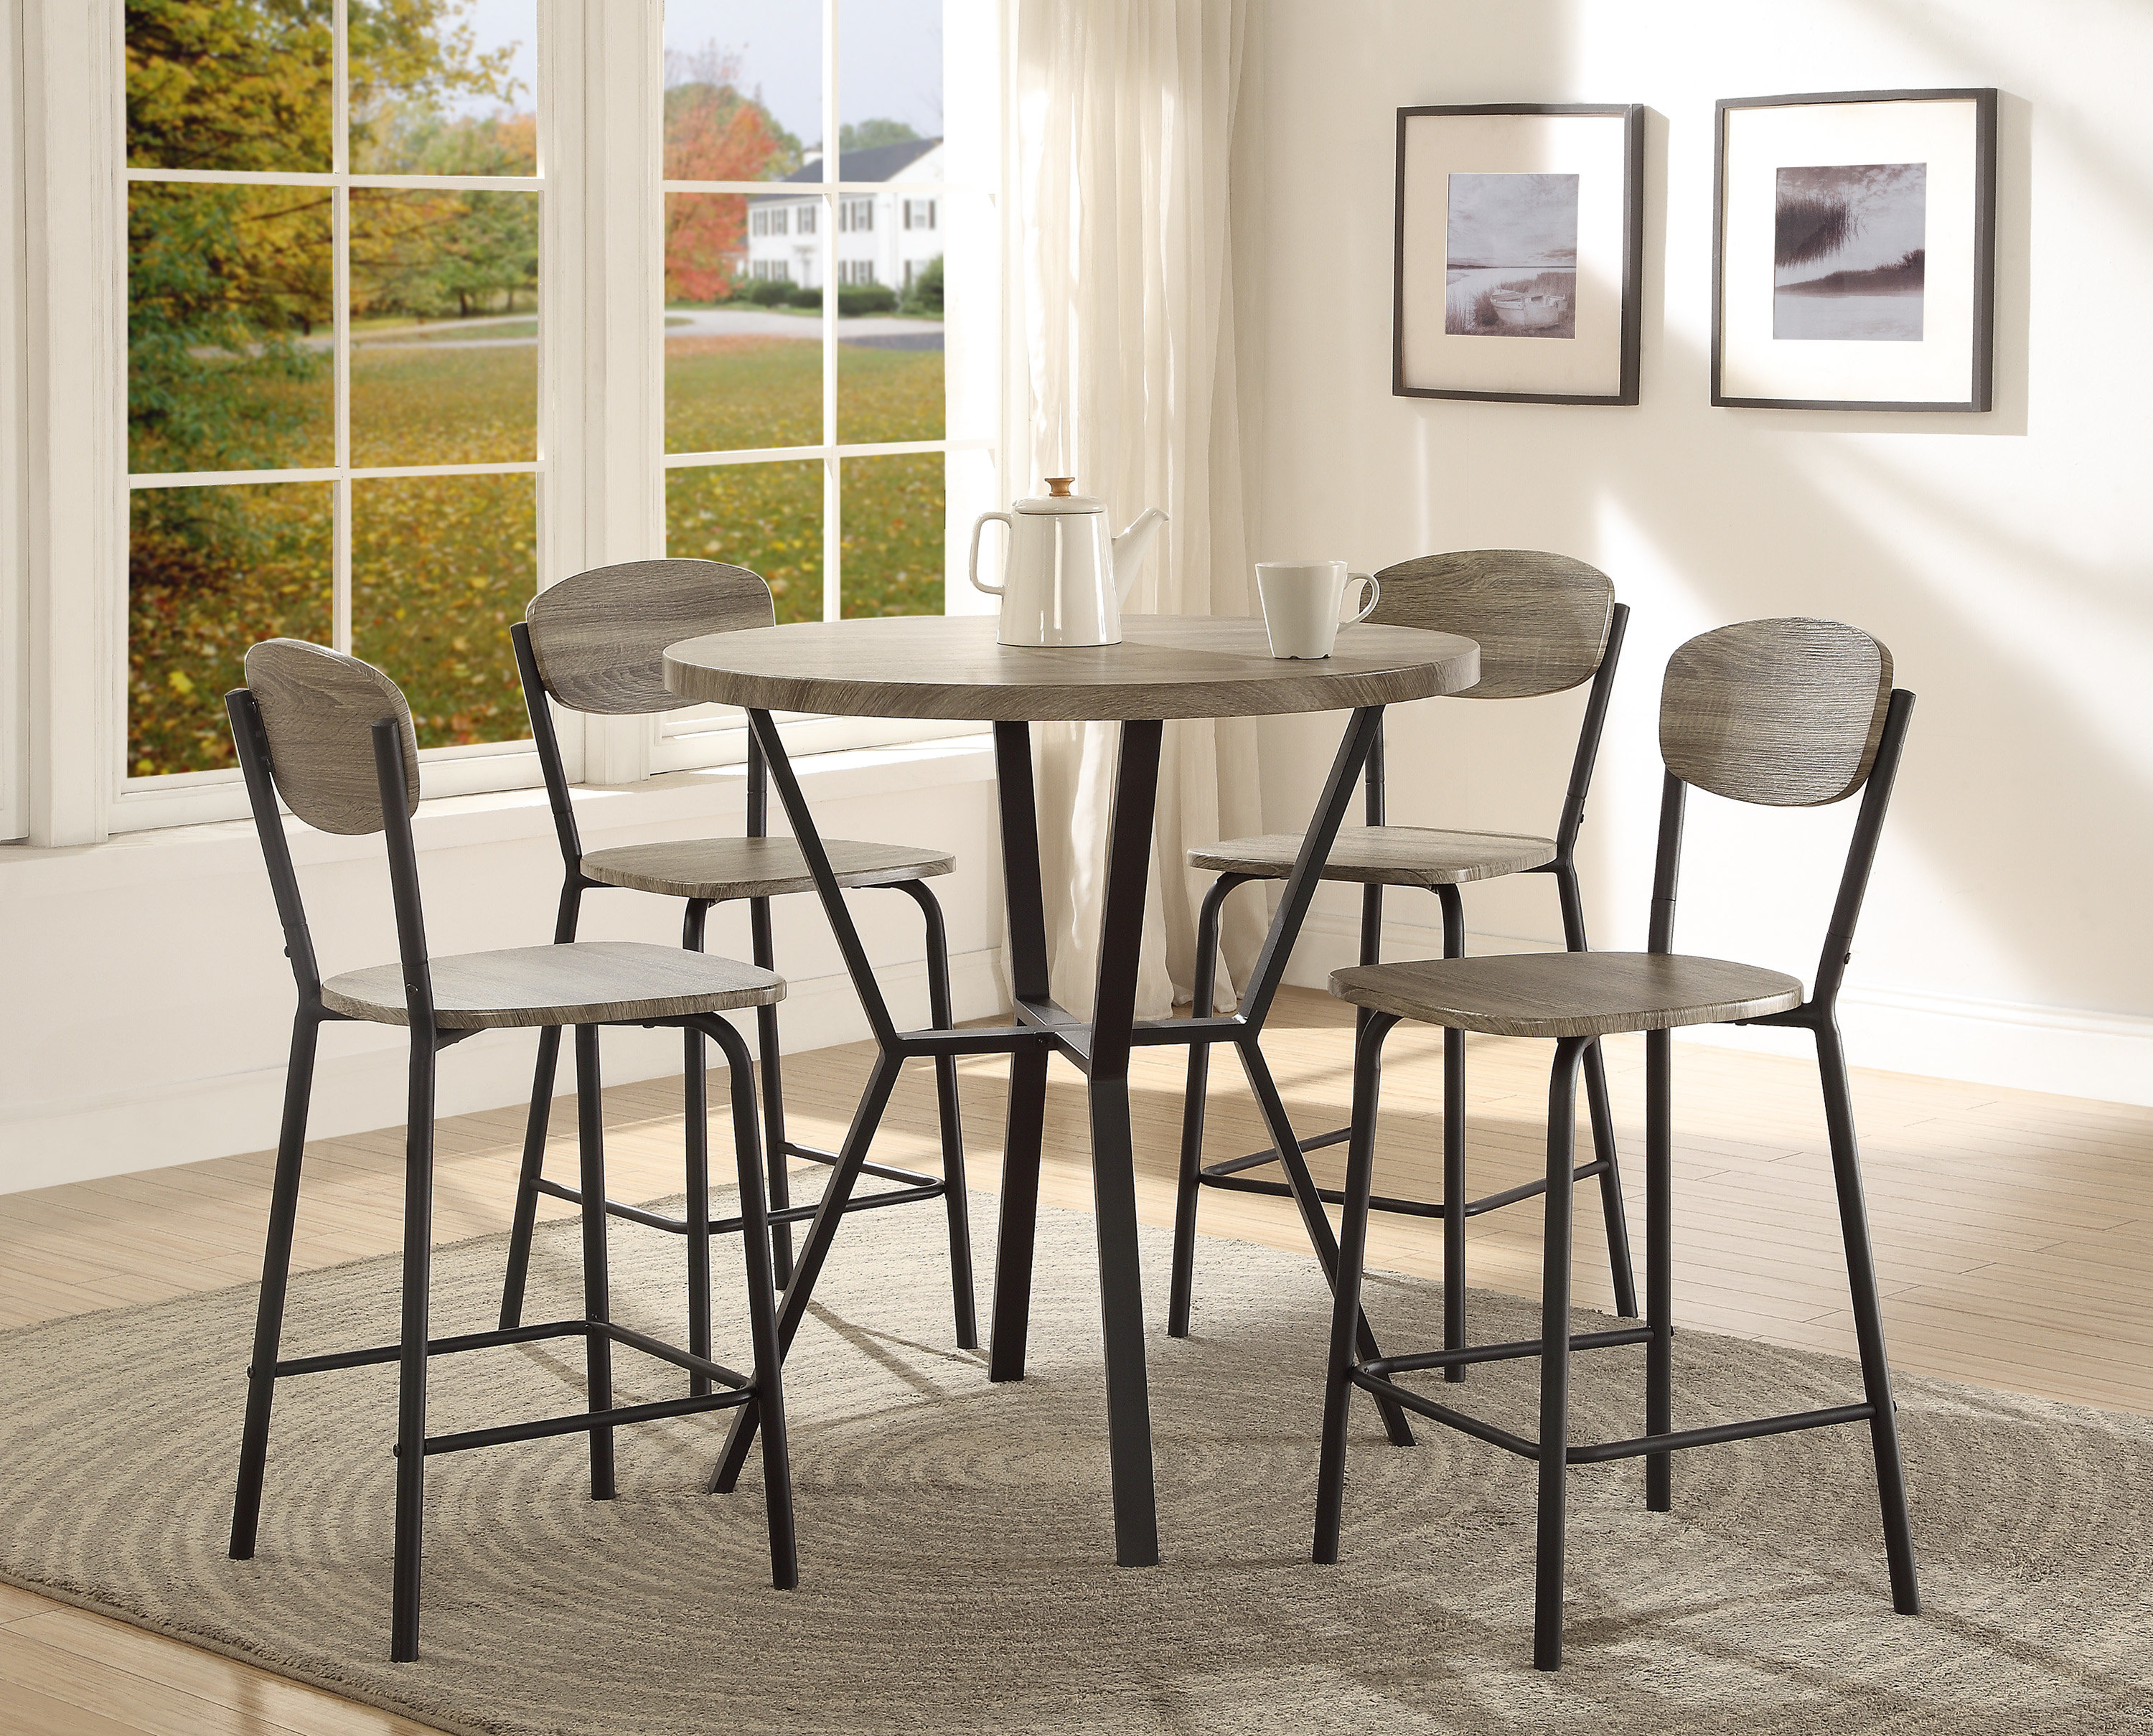 Felicia 5 Piece Counter Height Dining Set Throughout Favorite Middleport 5 Piece Dining Sets (Gallery 9 of 20)